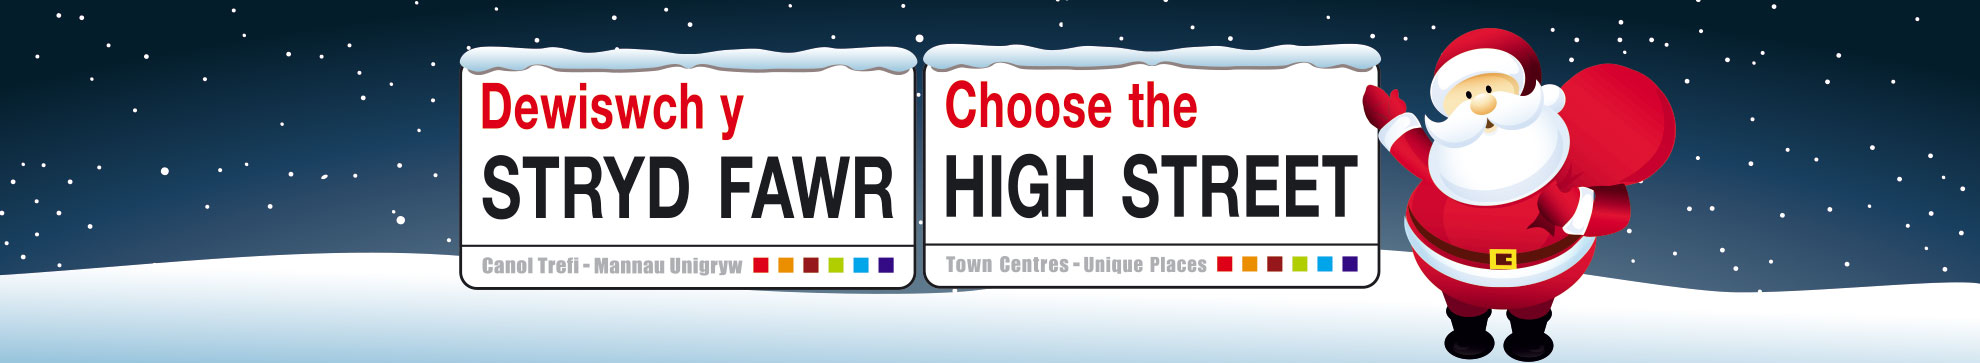 Choose the High Street banner